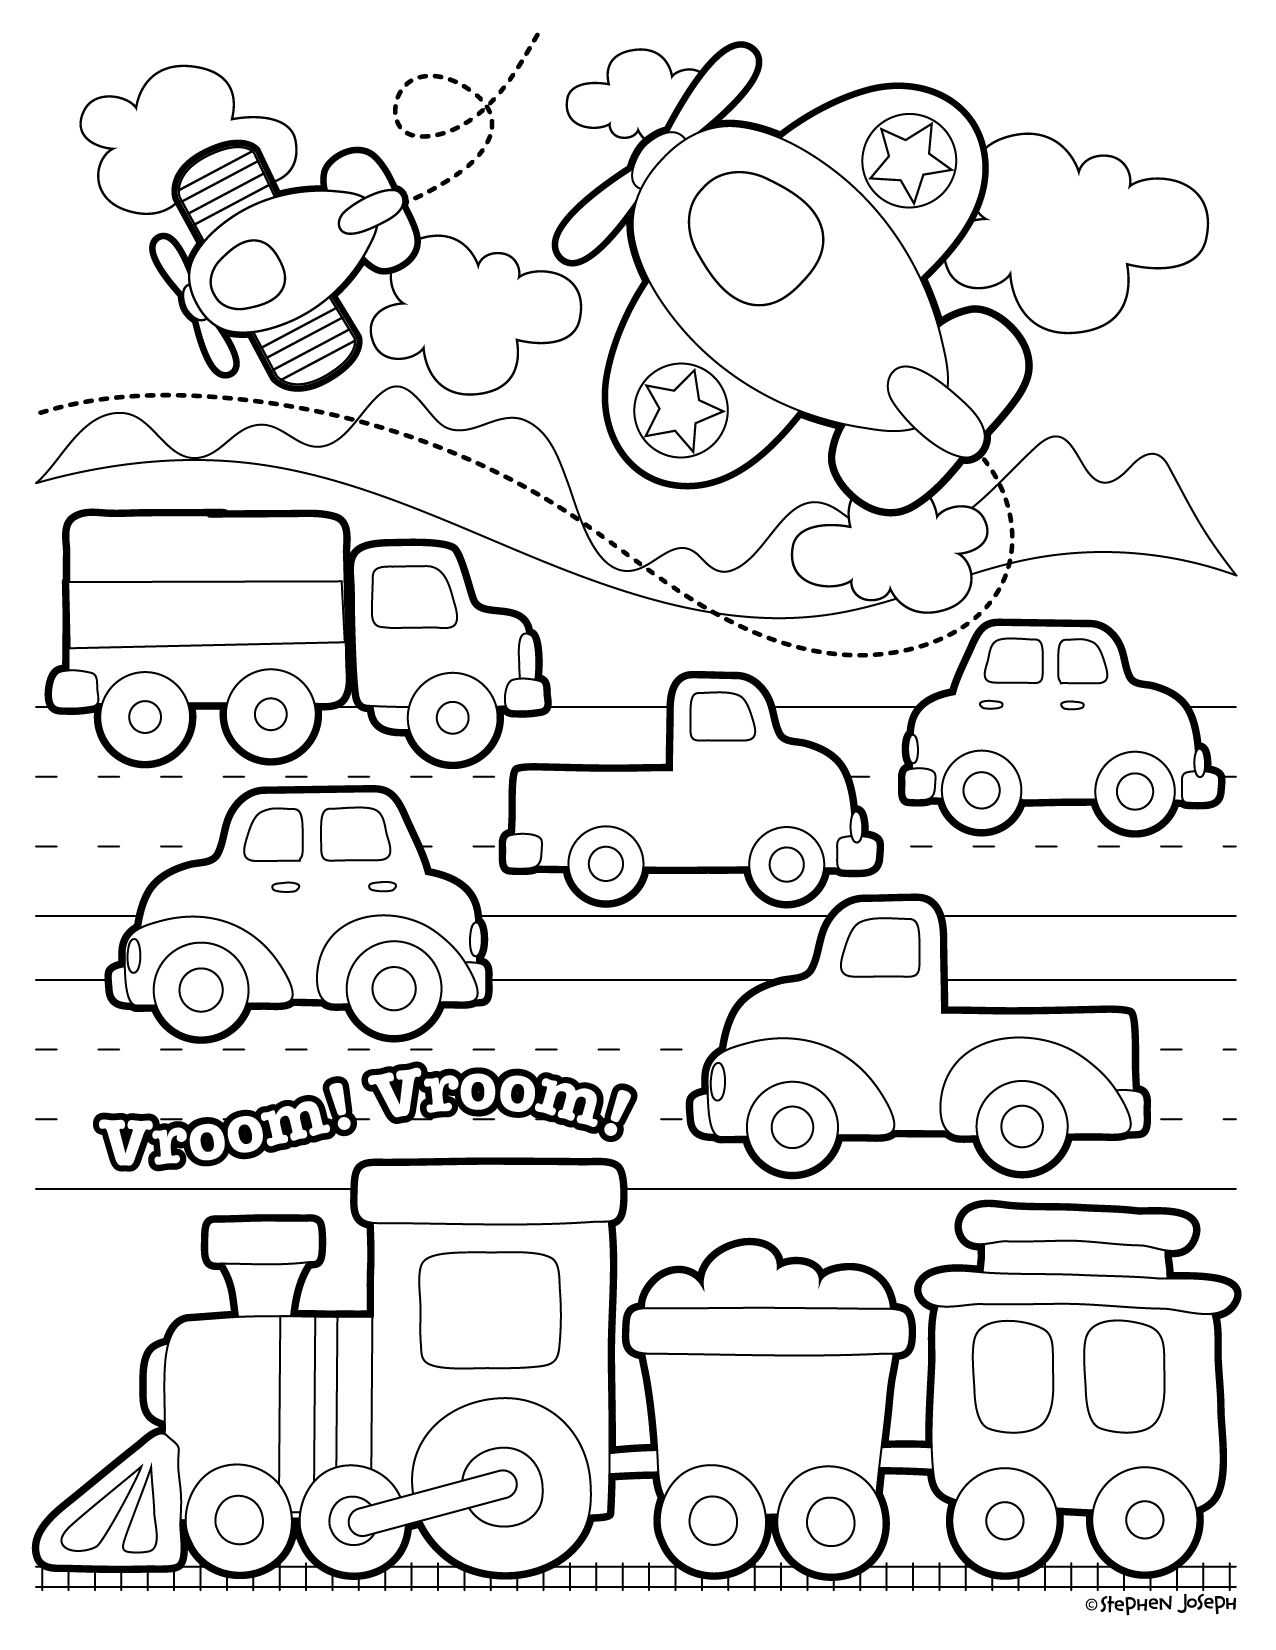 transportation coloring pages for kids - photo#11